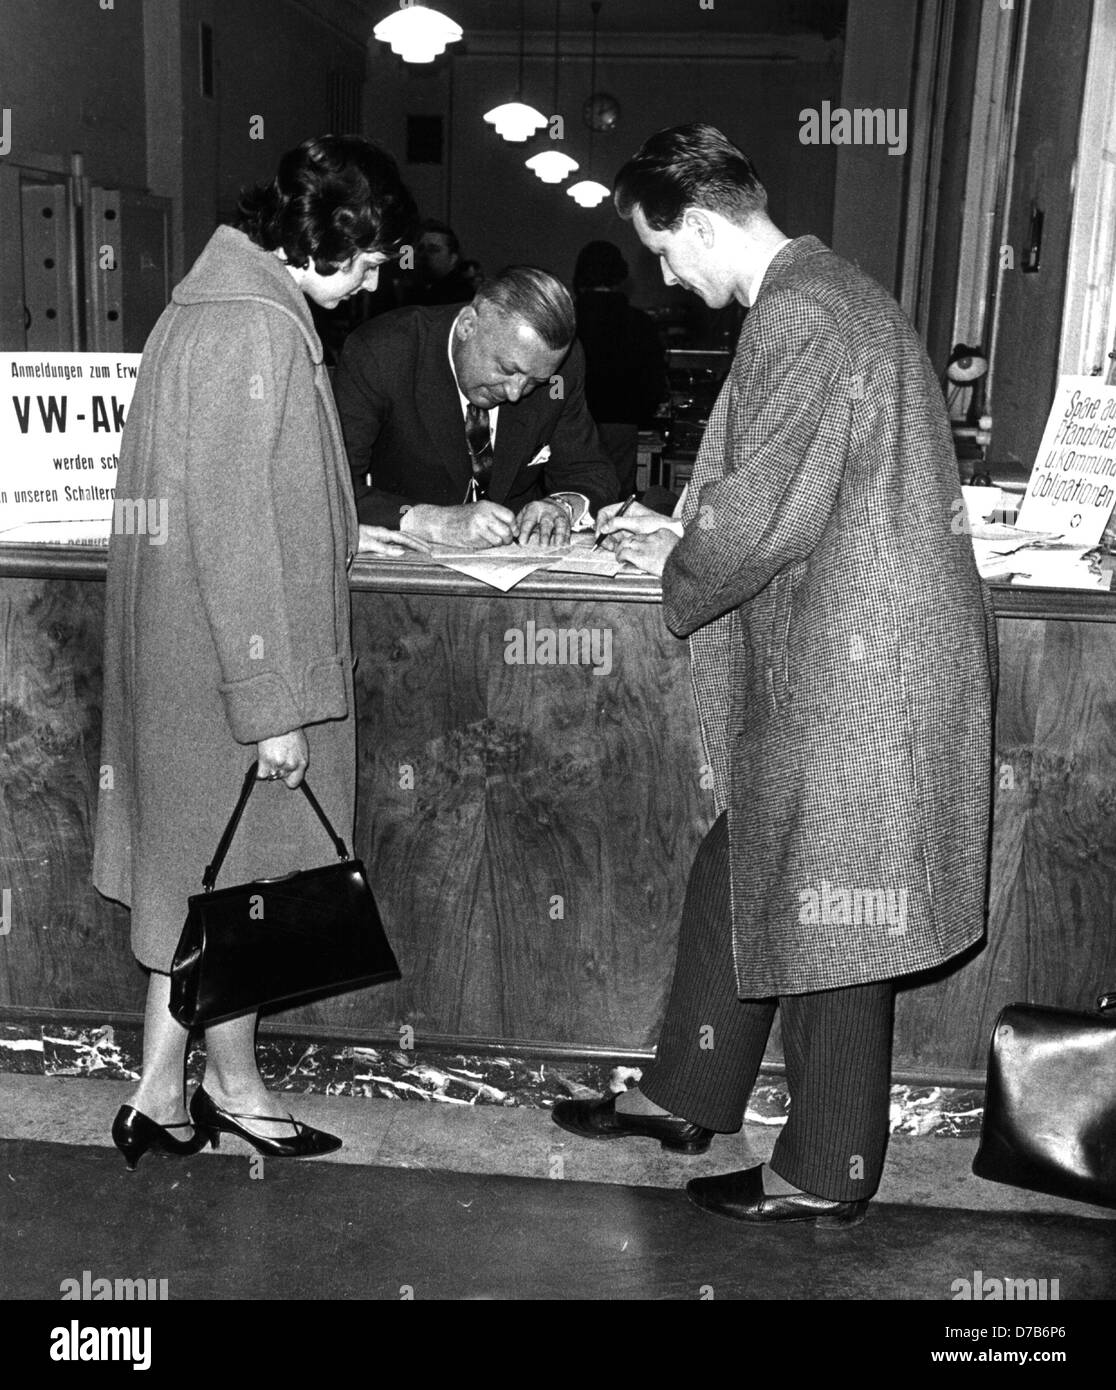 A young couple acquires Volkswagen AG stocks, photographed in January 1961. Stock Photo